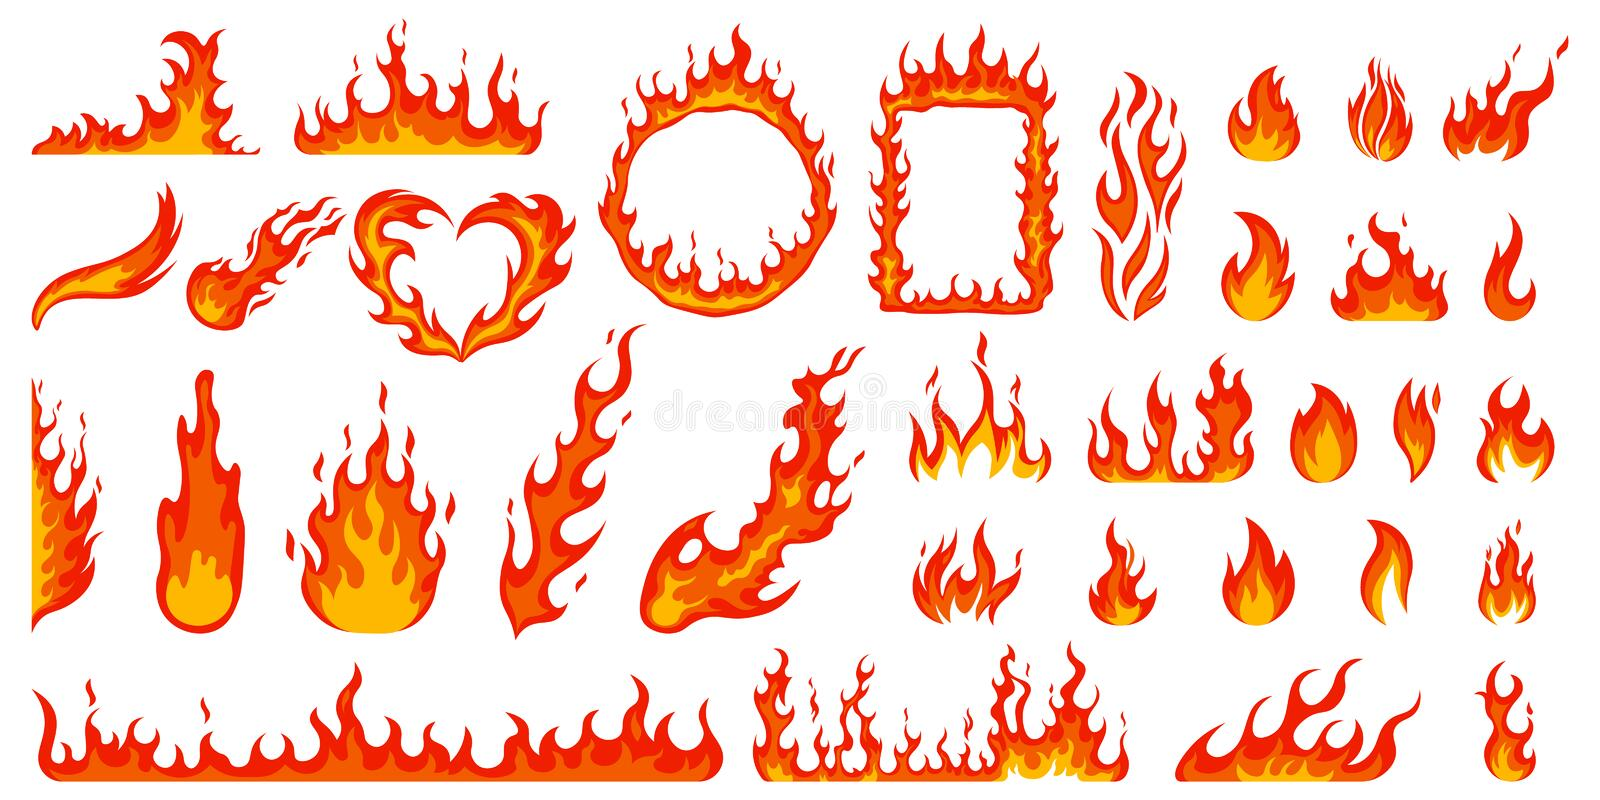 Cartoon Fire Stock Illustrations 82 787 Cartoon Fire Stock Illustrations Vectors Clipart Dreamstime Over 788 cartoon flames png images are found on vippng. dreamstime com